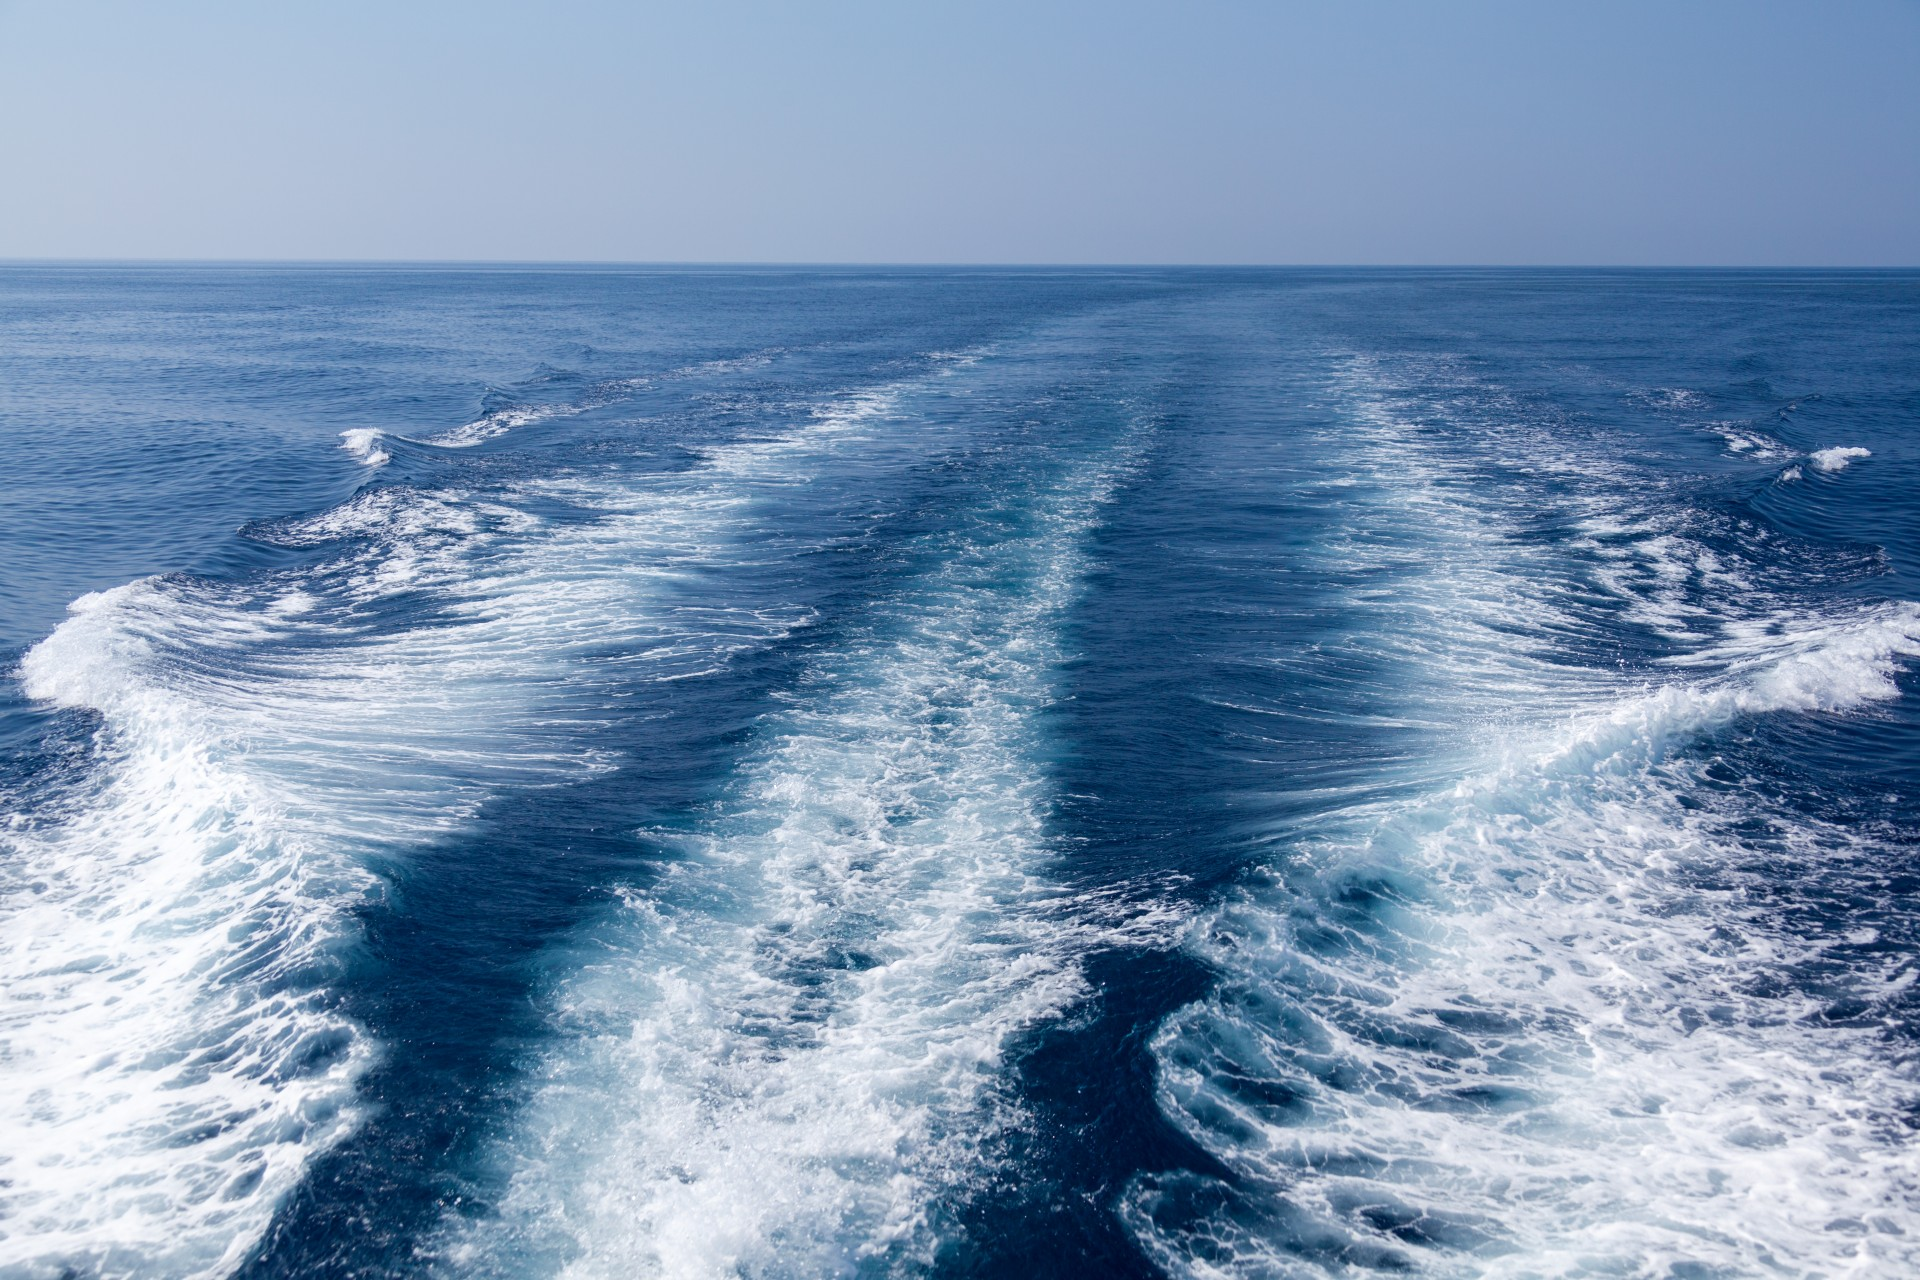 Photo of waves behind a boat (sillage) by Petr Kratochvil